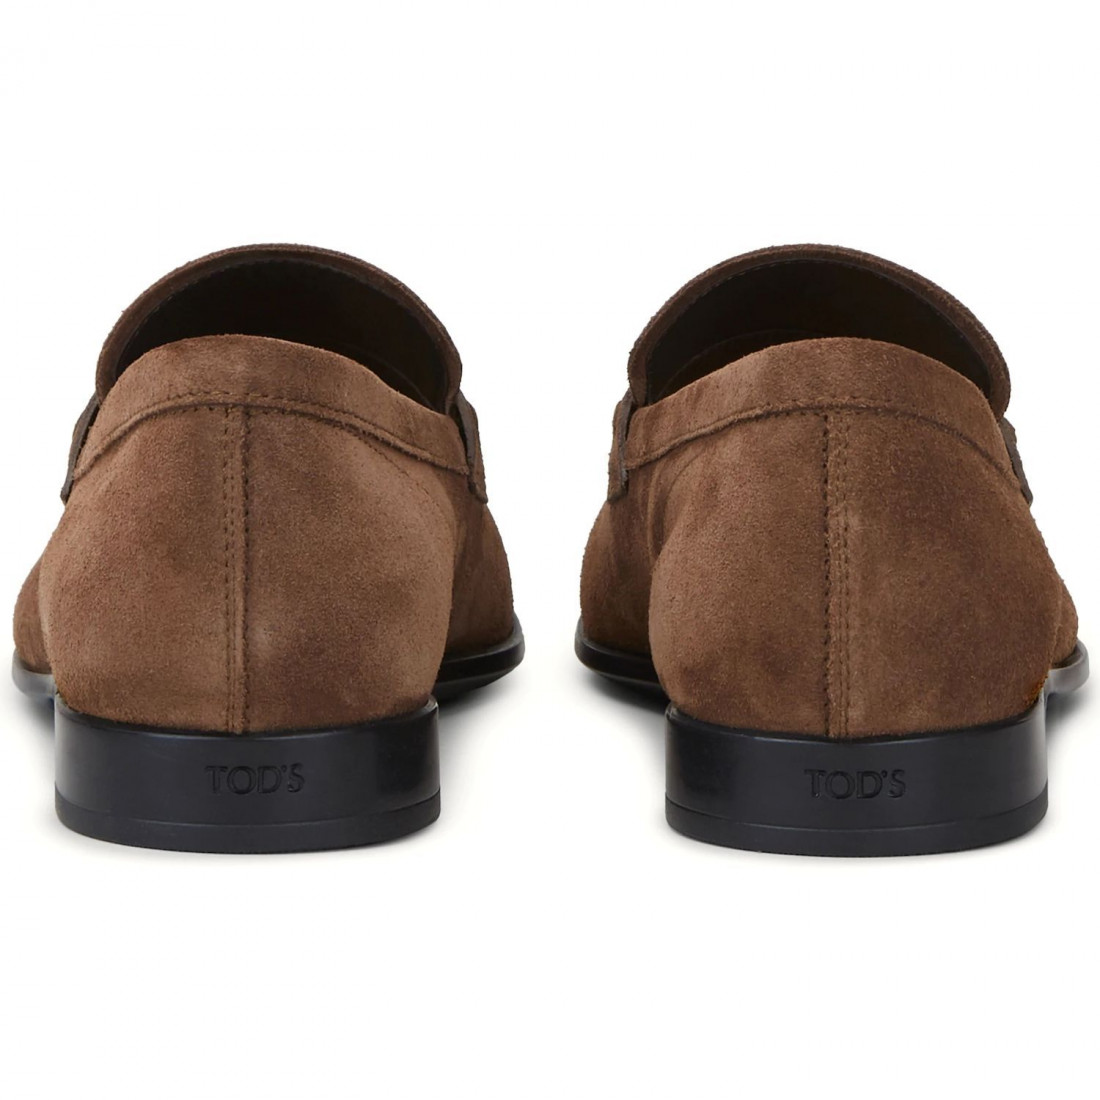 loafers man tods xxm51b00010re0s818 6816